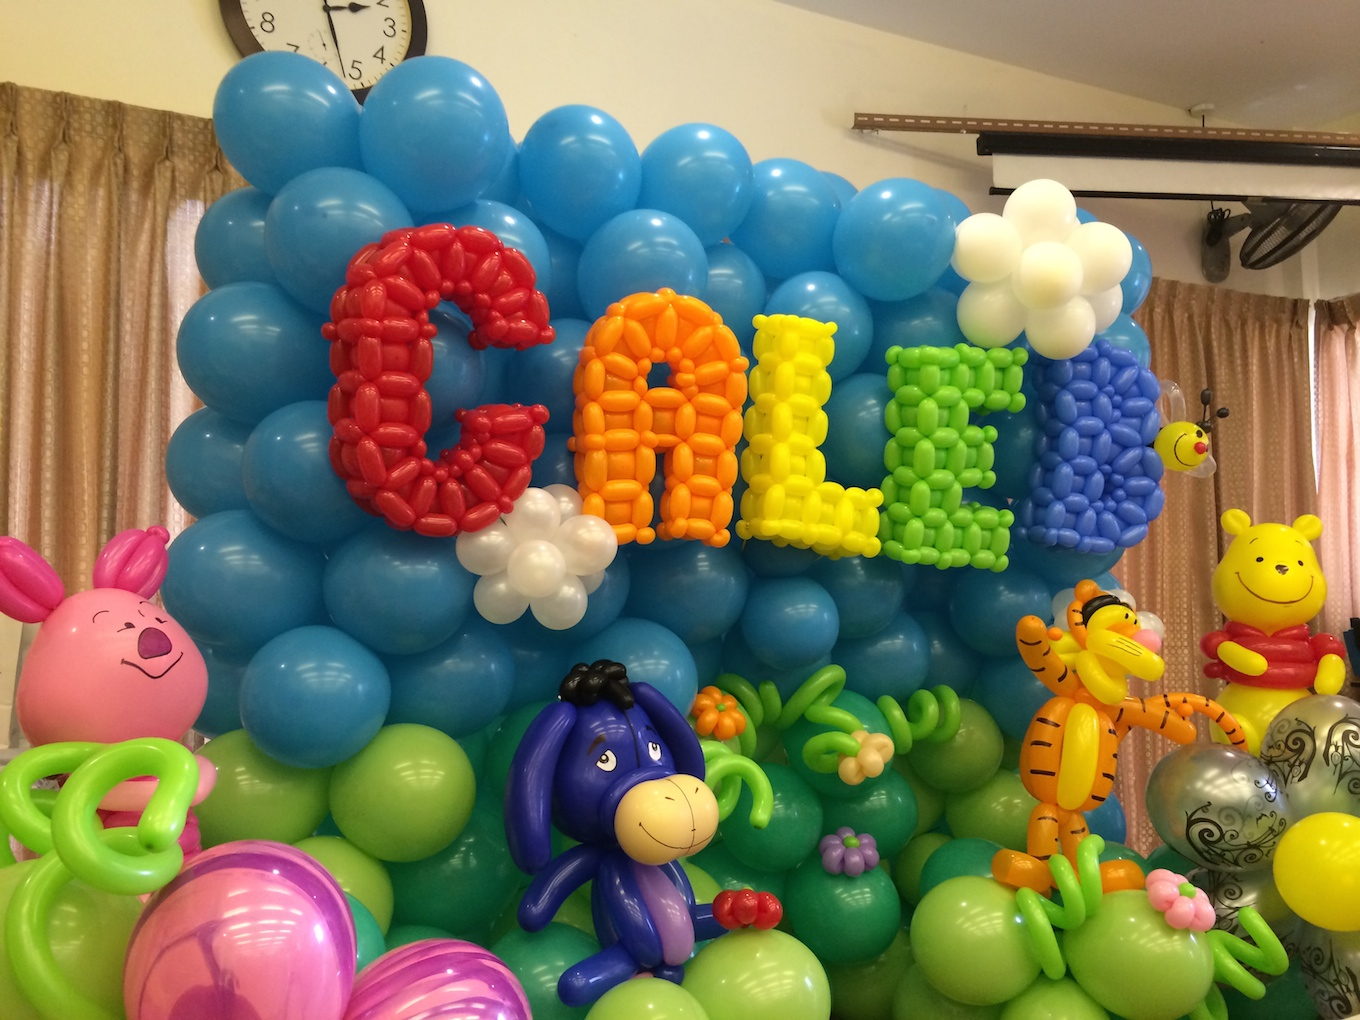 cartoon balloon decorations for birthday party that balloons. Black Bedroom Furniture Sets. Home Design Ideas